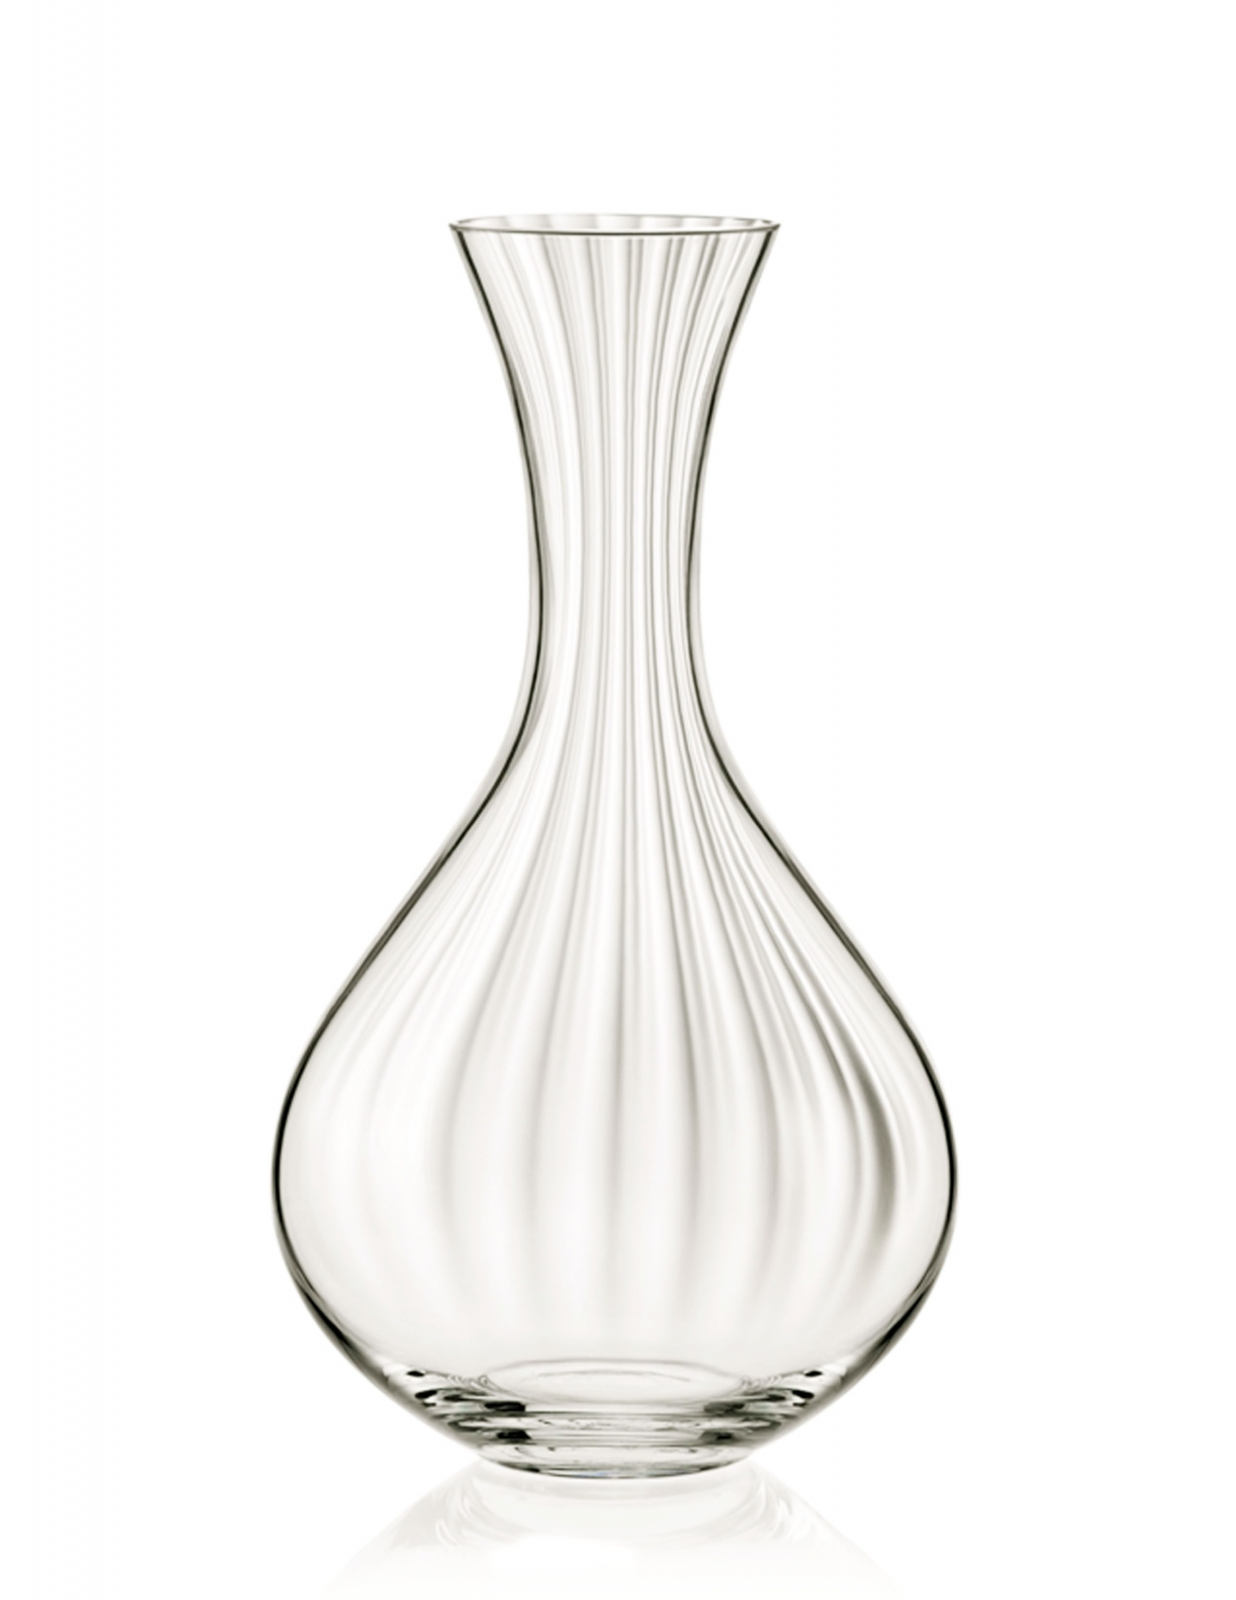 Decanter with Straight Cut Design